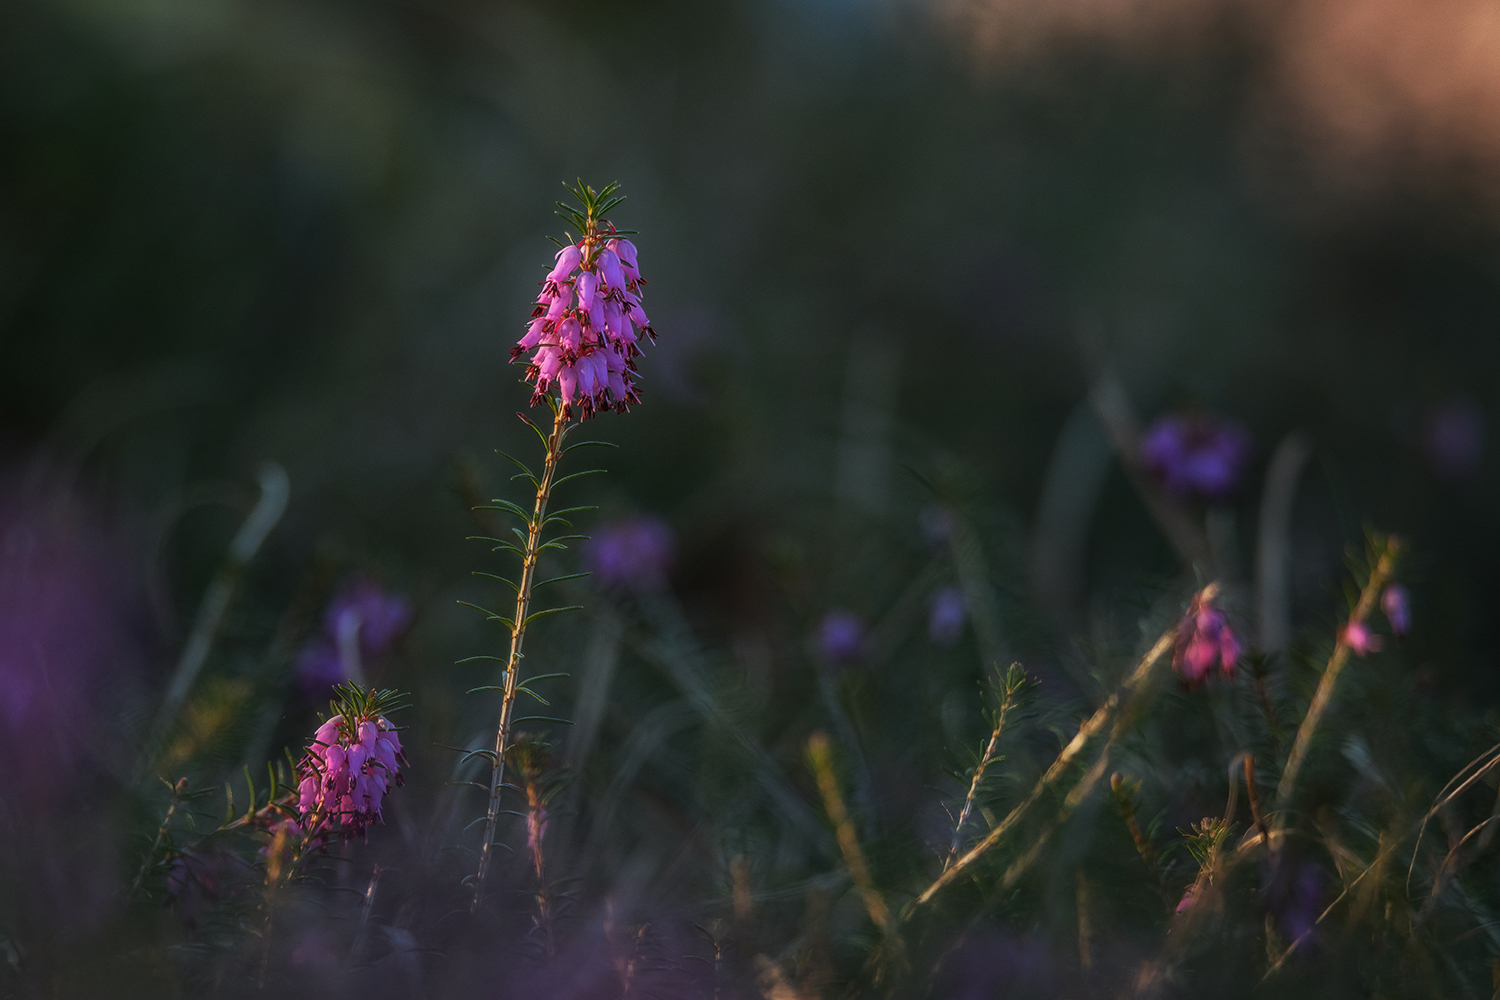 Erica flower in a dark background example image 1